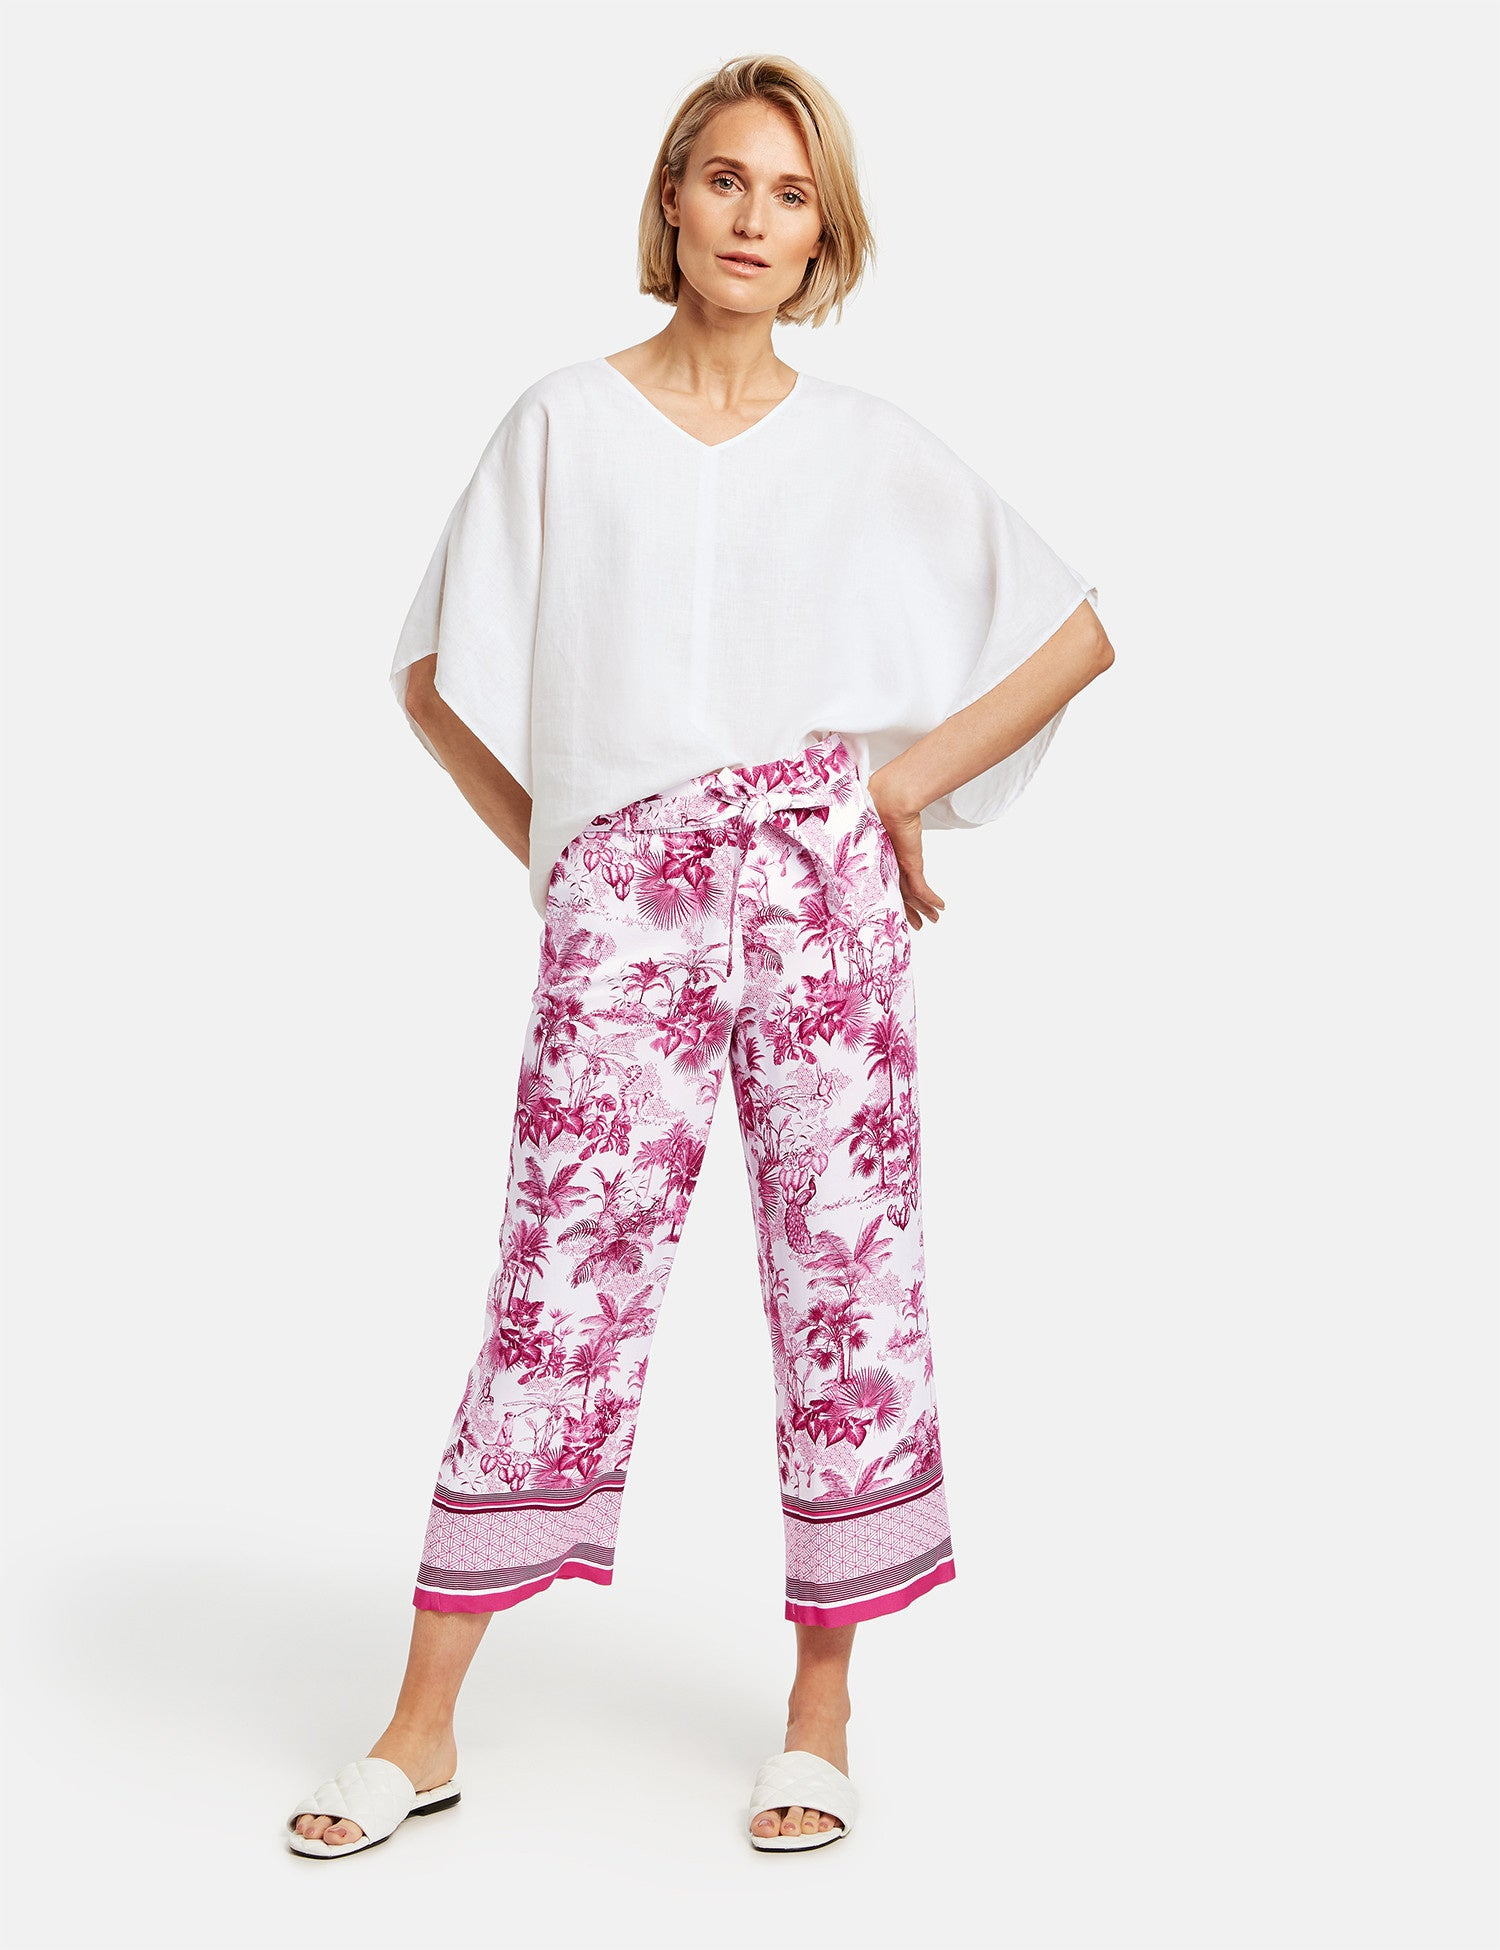 Gerry Weber Pink Oriental Print Trousers 222295